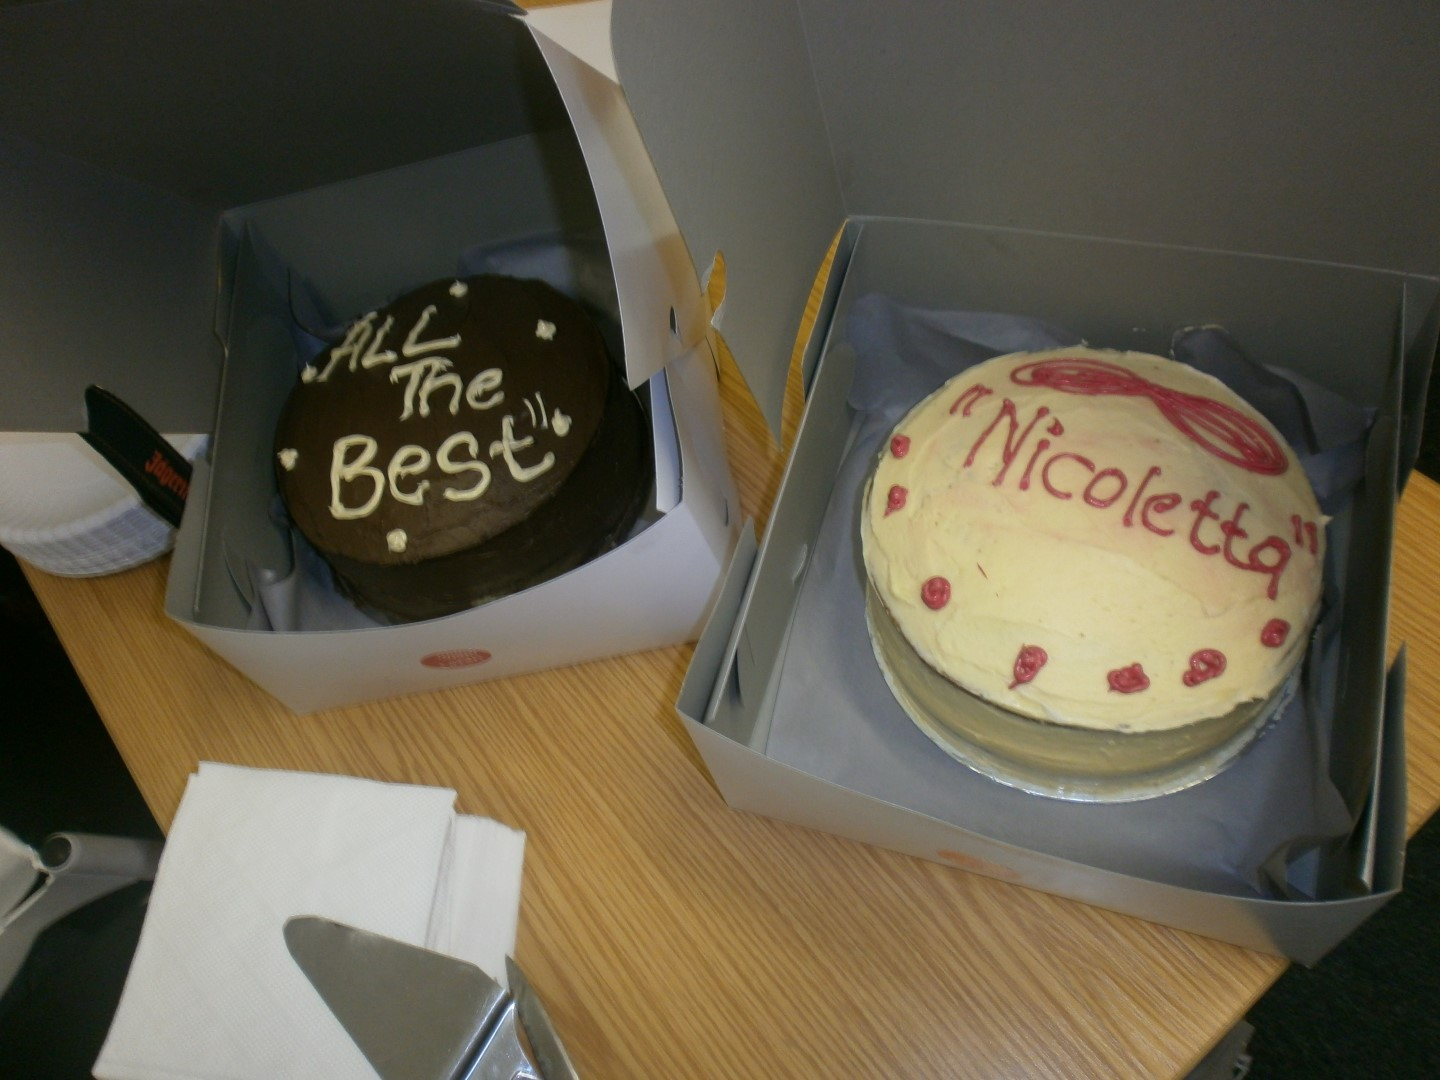 Cake for Nicoletta